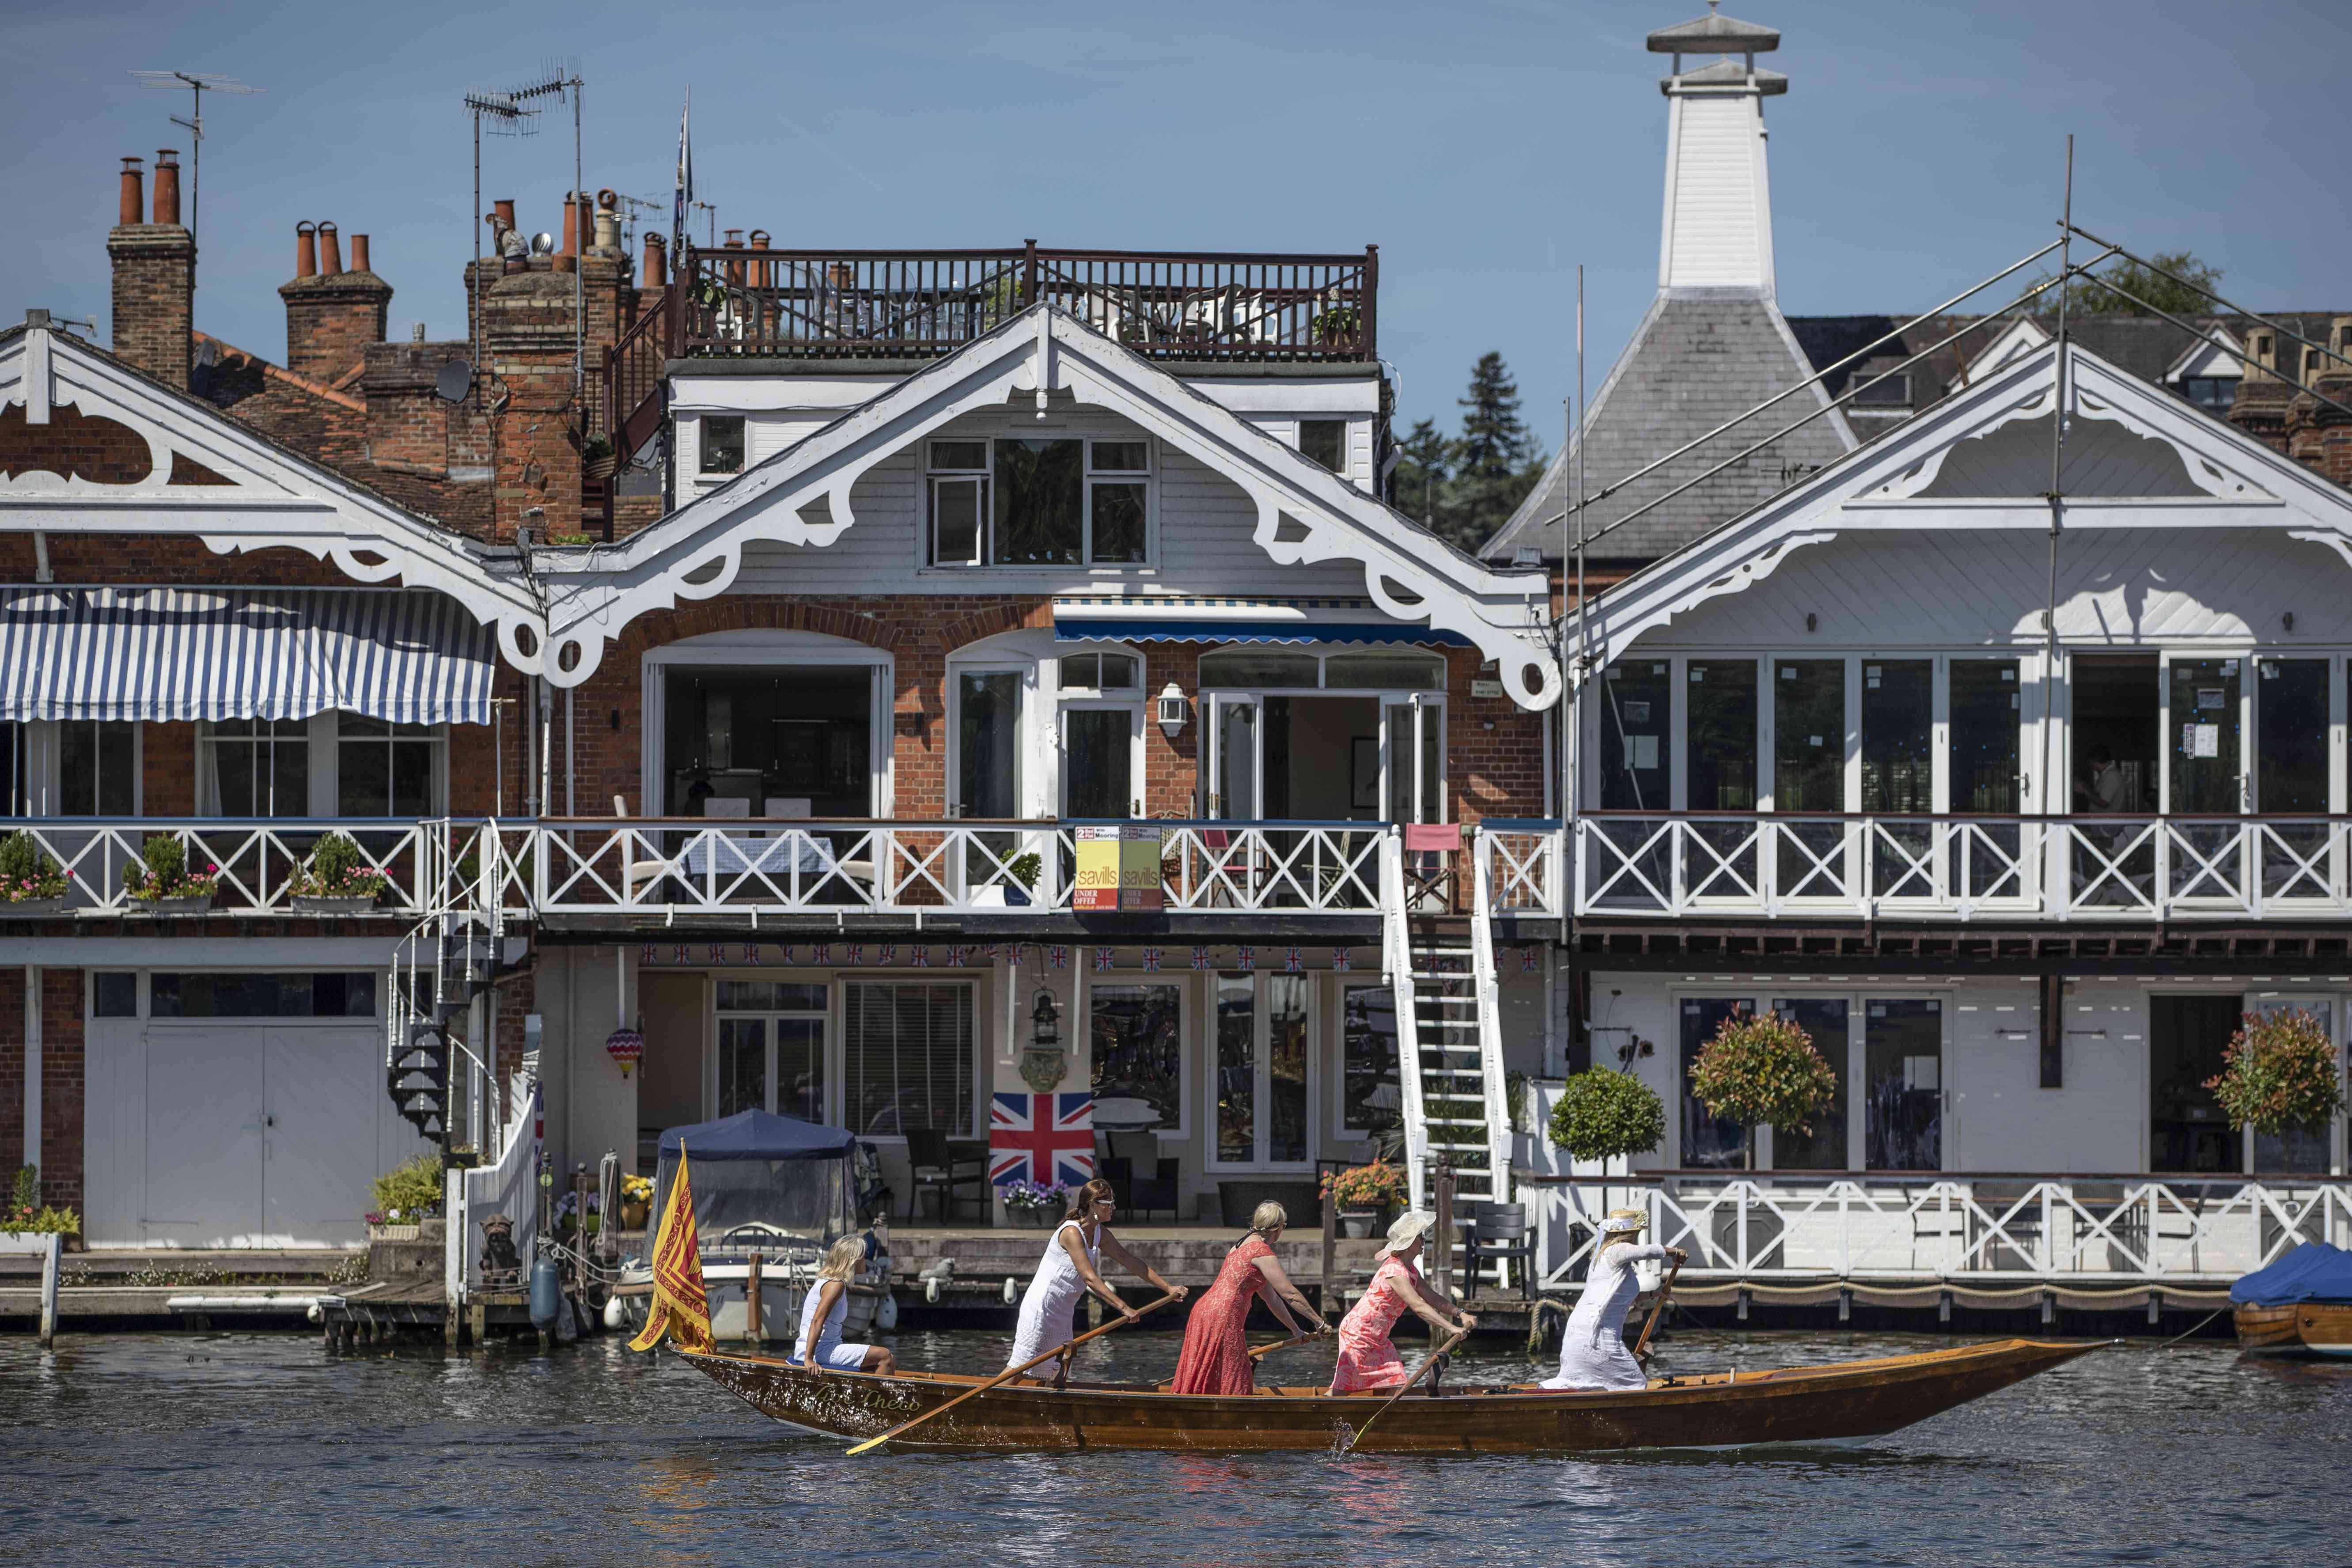 Athletes And Spectators Attend The Henley Regatta